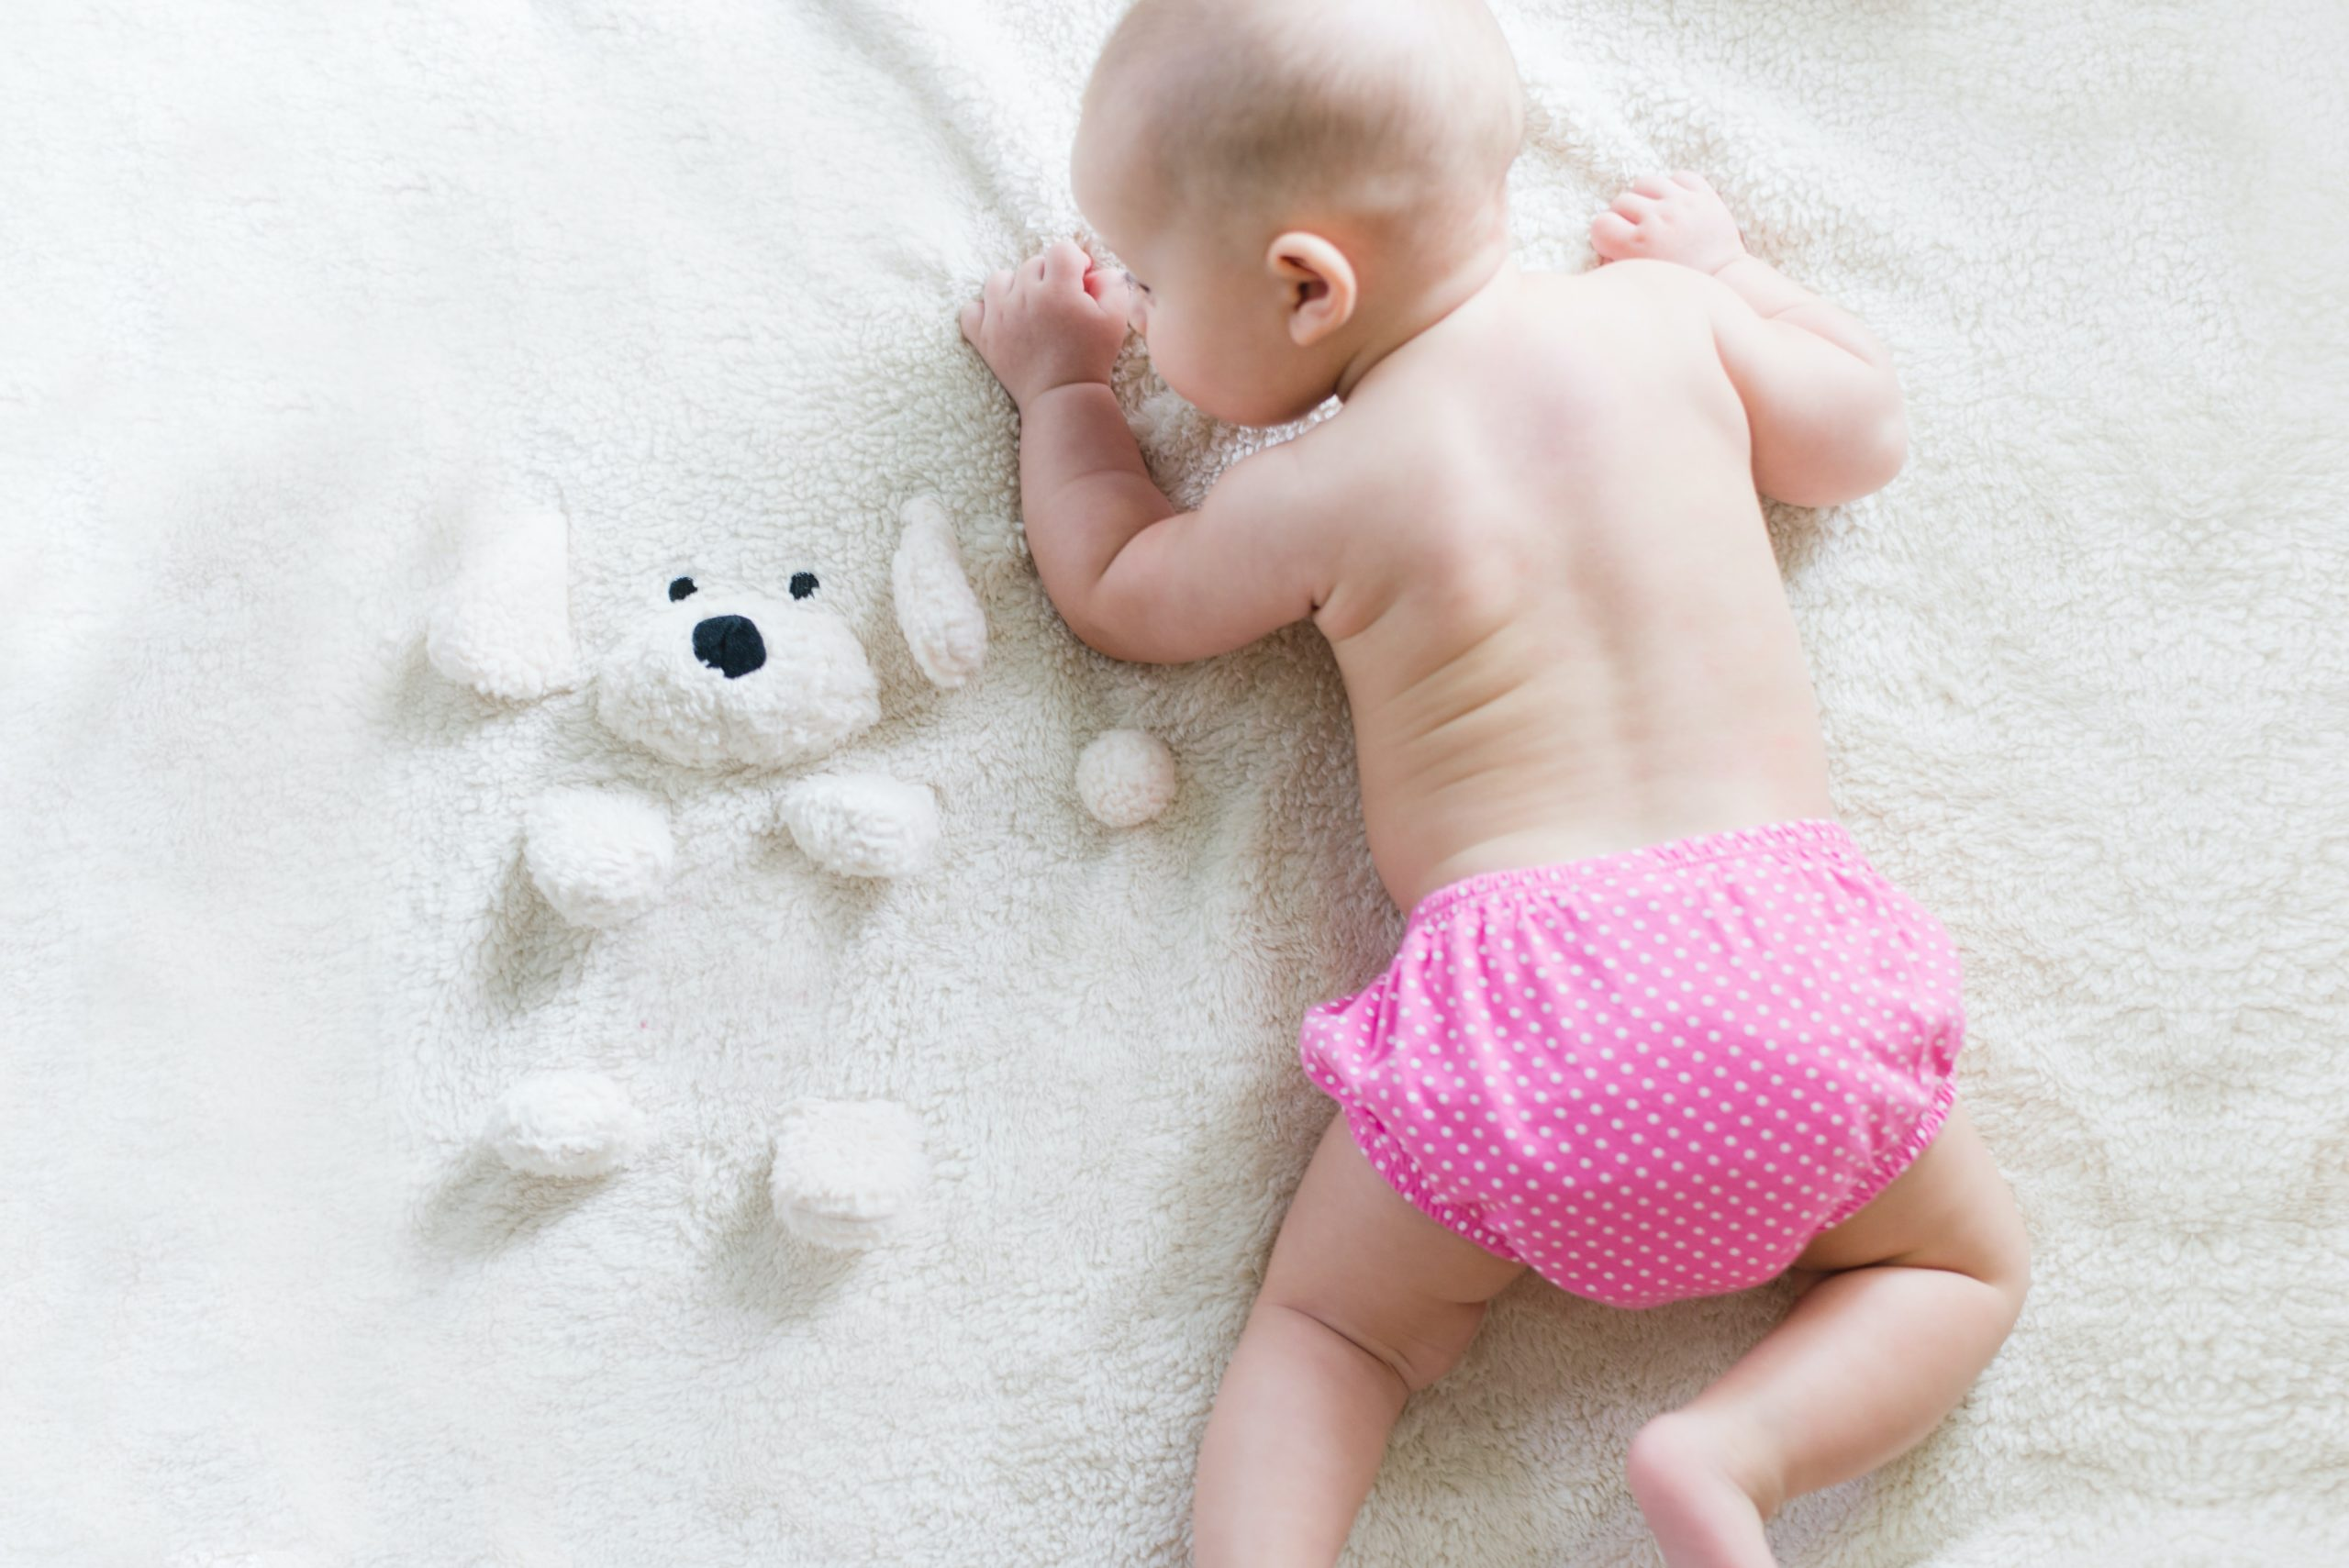 Wonderful NCS NEEDED in Pacific Palisades for 5-Week-Old! Starts ASAP!